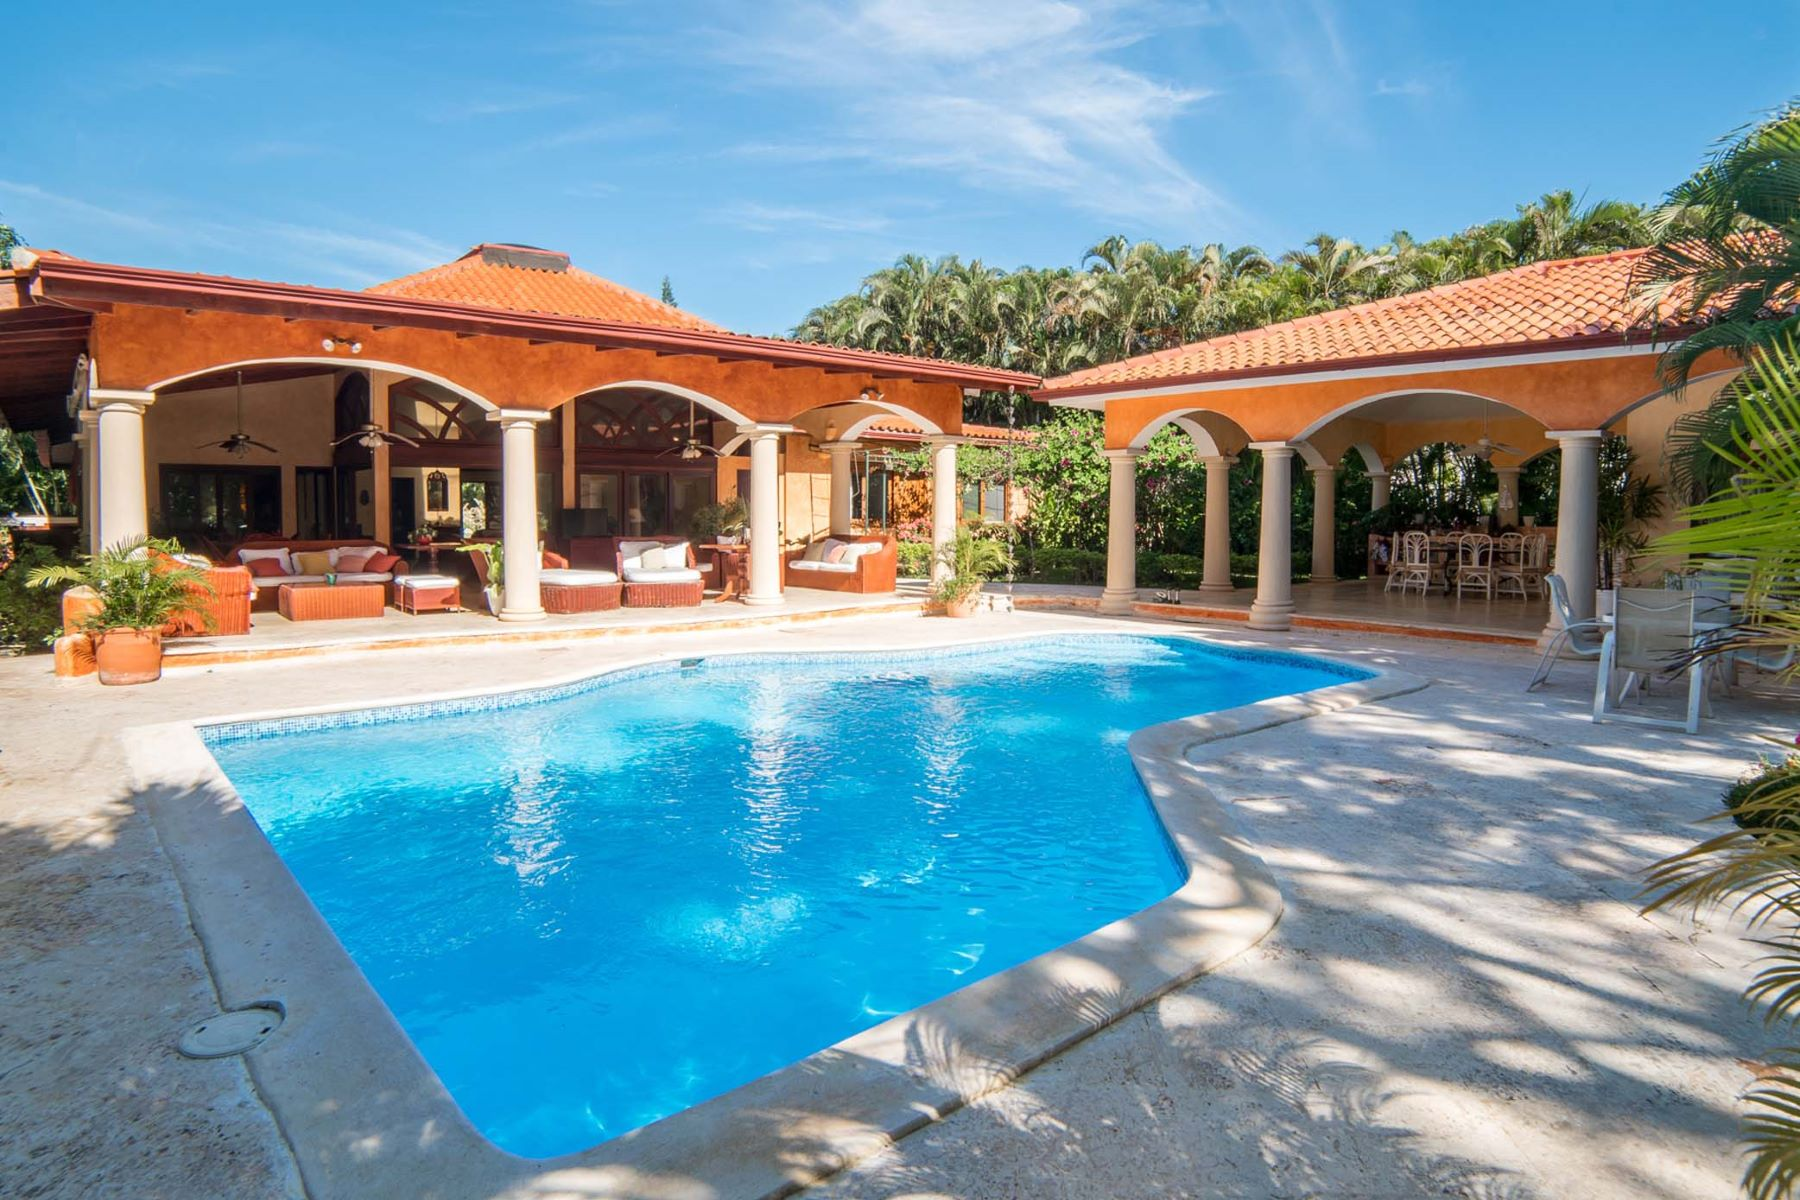 Single Family Home for Sale at One-level Mediterranean Inspired Villa Casa De Campo, La Romana Dominican Republic